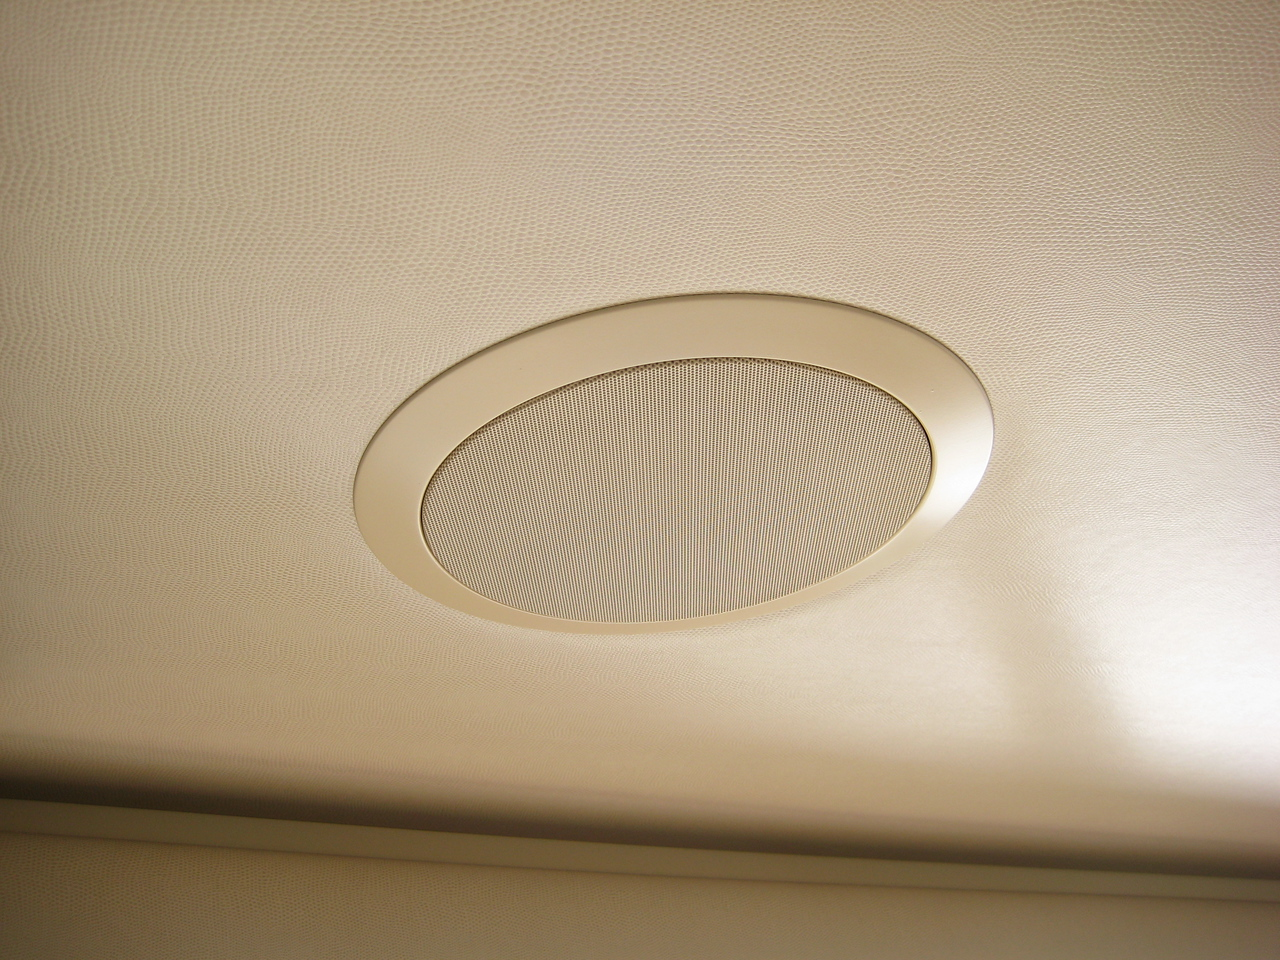 Available in ceiling speakers offer the best fidelity available from your system.